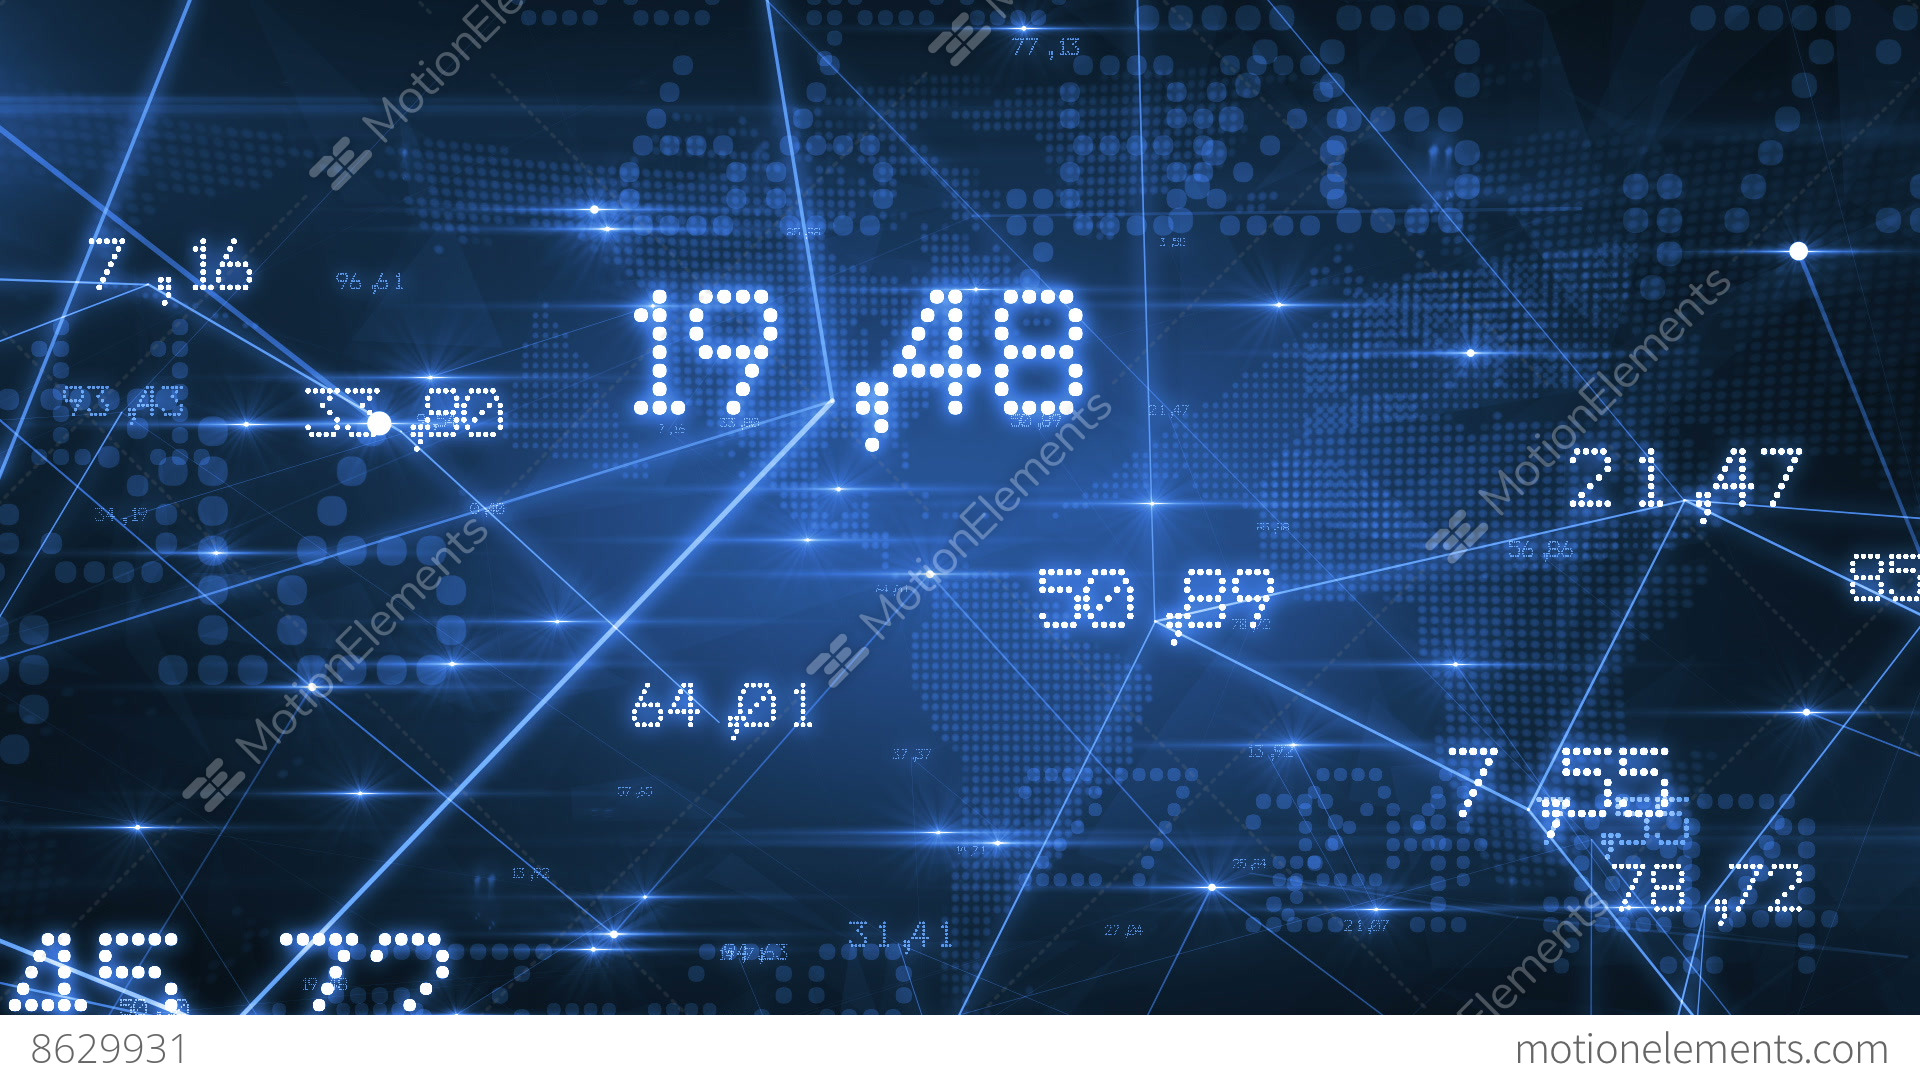 Futuristic Network With Numbers And Lines. Blue Background. Looped. HD 1080 Stock Animation